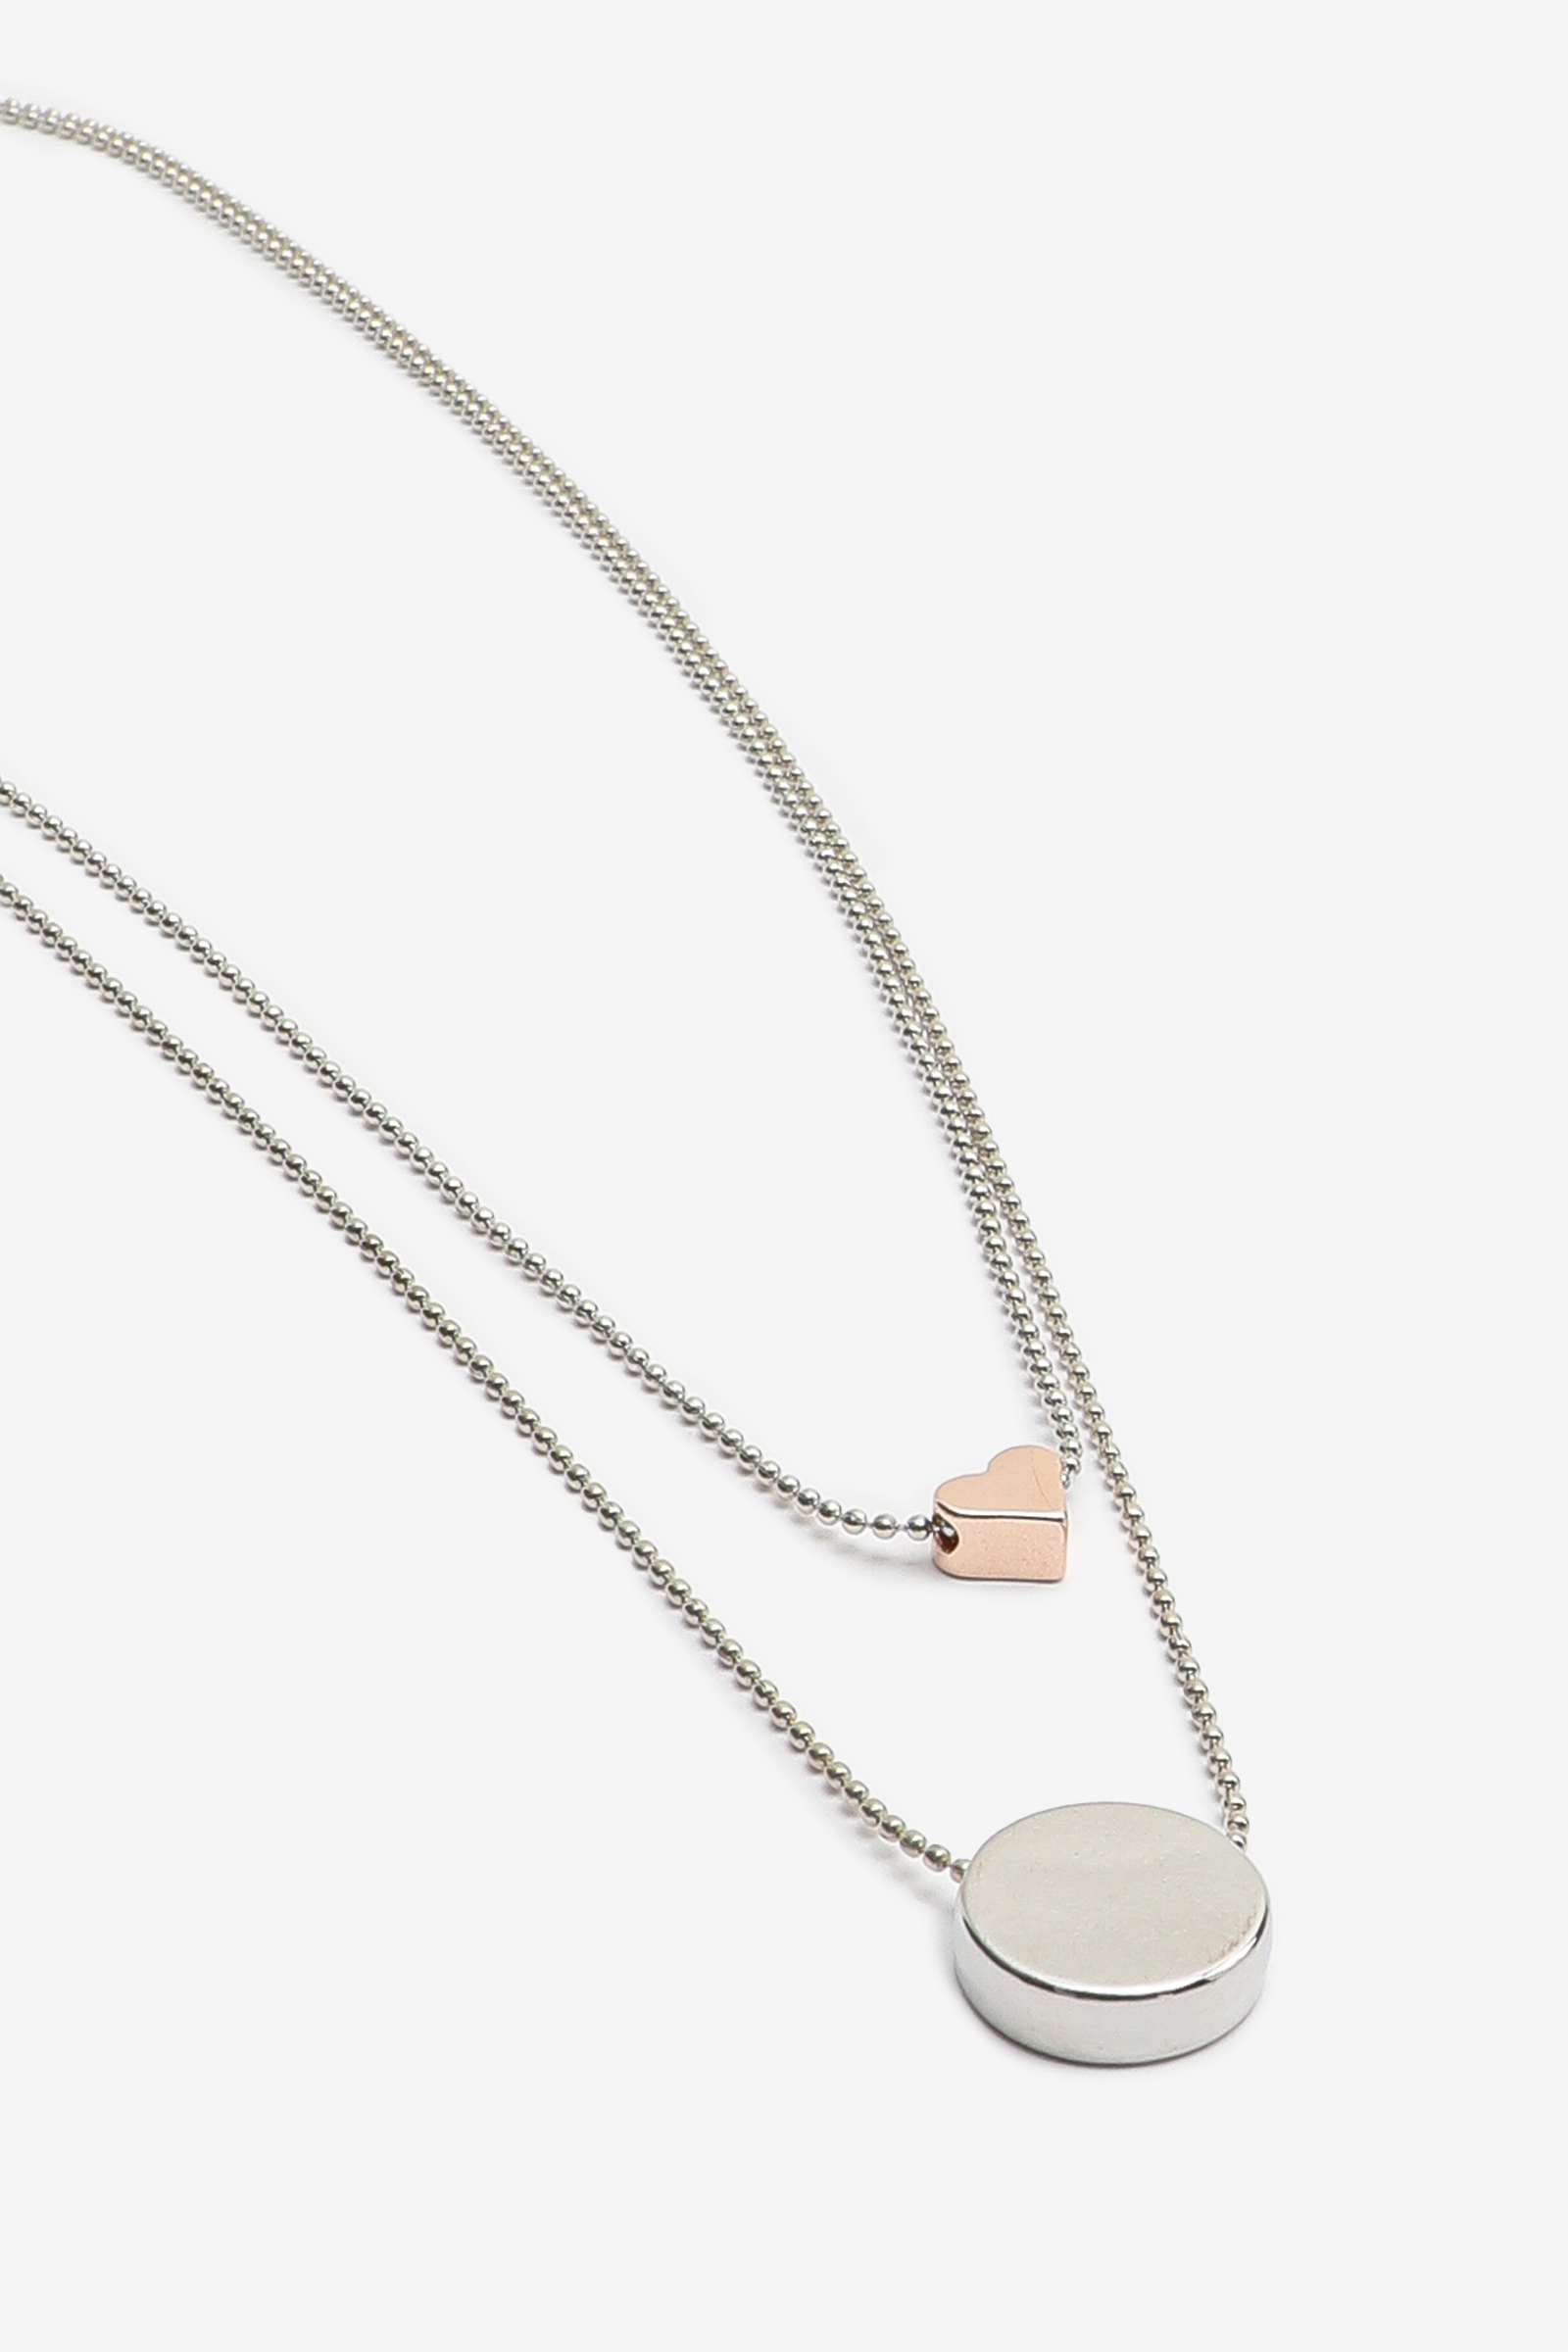 Necklace with Heart and Circle Pendants